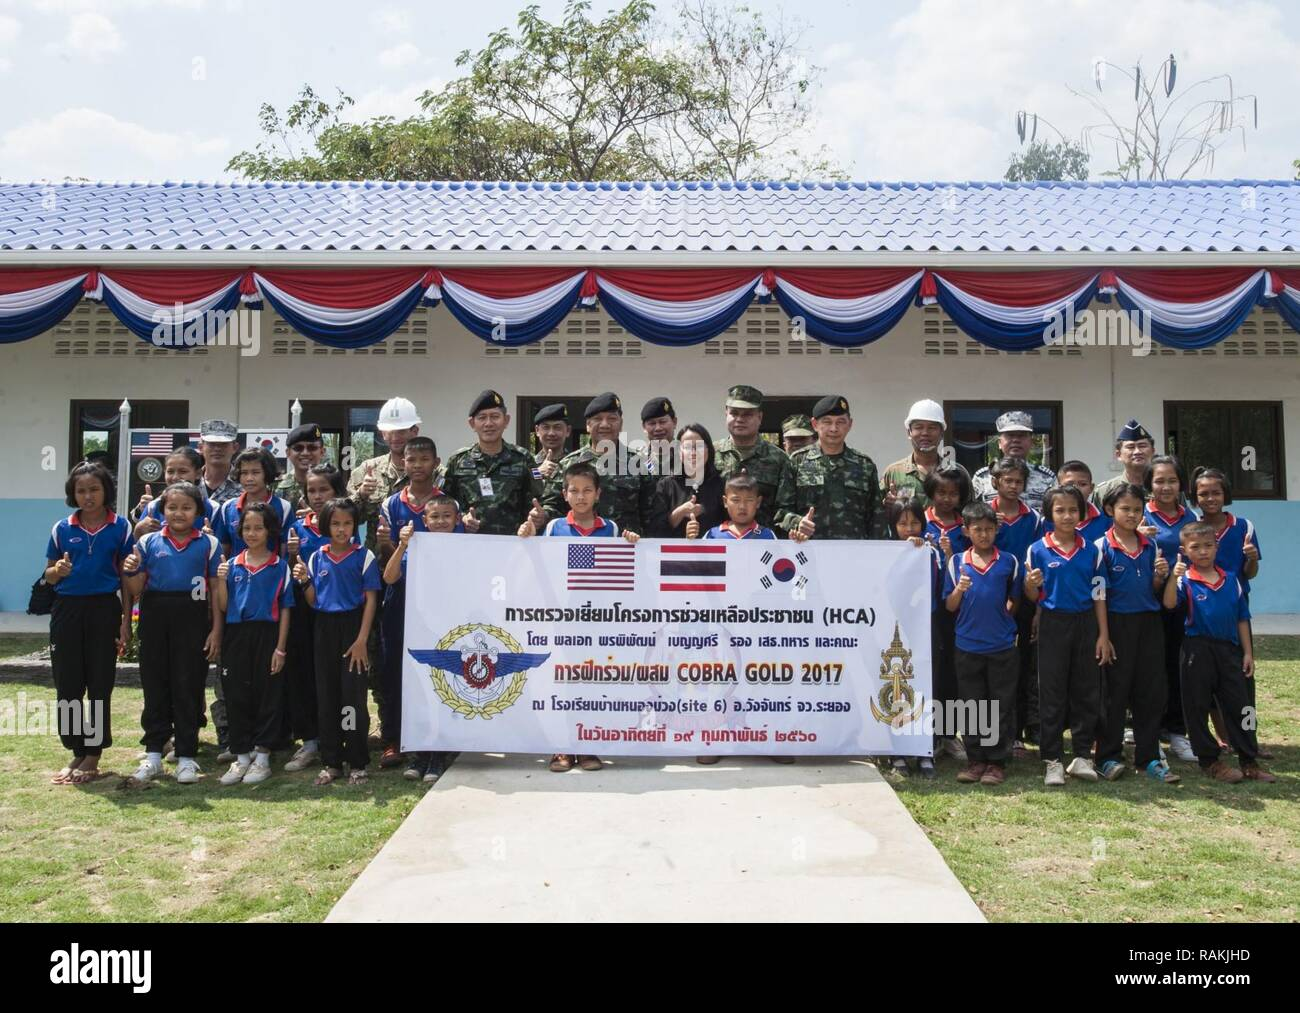 RAYONG PROVINCE, Thailand (Feb. 19, 2017) – Gen. Ponpipat Benyasri, Deputy Chief of Joint Staff, Royal Thai Armed Forces, poses for a group photo with students of Ban Nong Muang School and representatives from U.S. Naval Mobile Construction Battalion 5, Construction and Developmental Regiment, Sattahip Naval Base and Korean Naval Mobile Construction Battalion 2nd Engineer during his visit to thank the Multi-National Forces' joint effort for the school's expansion during Cobra Gold 2017.  Cobra Gold, in its 36th iteration, is the largest Theater Security Cooperation exercise in the Indo-Asia-Pa Stock Photo